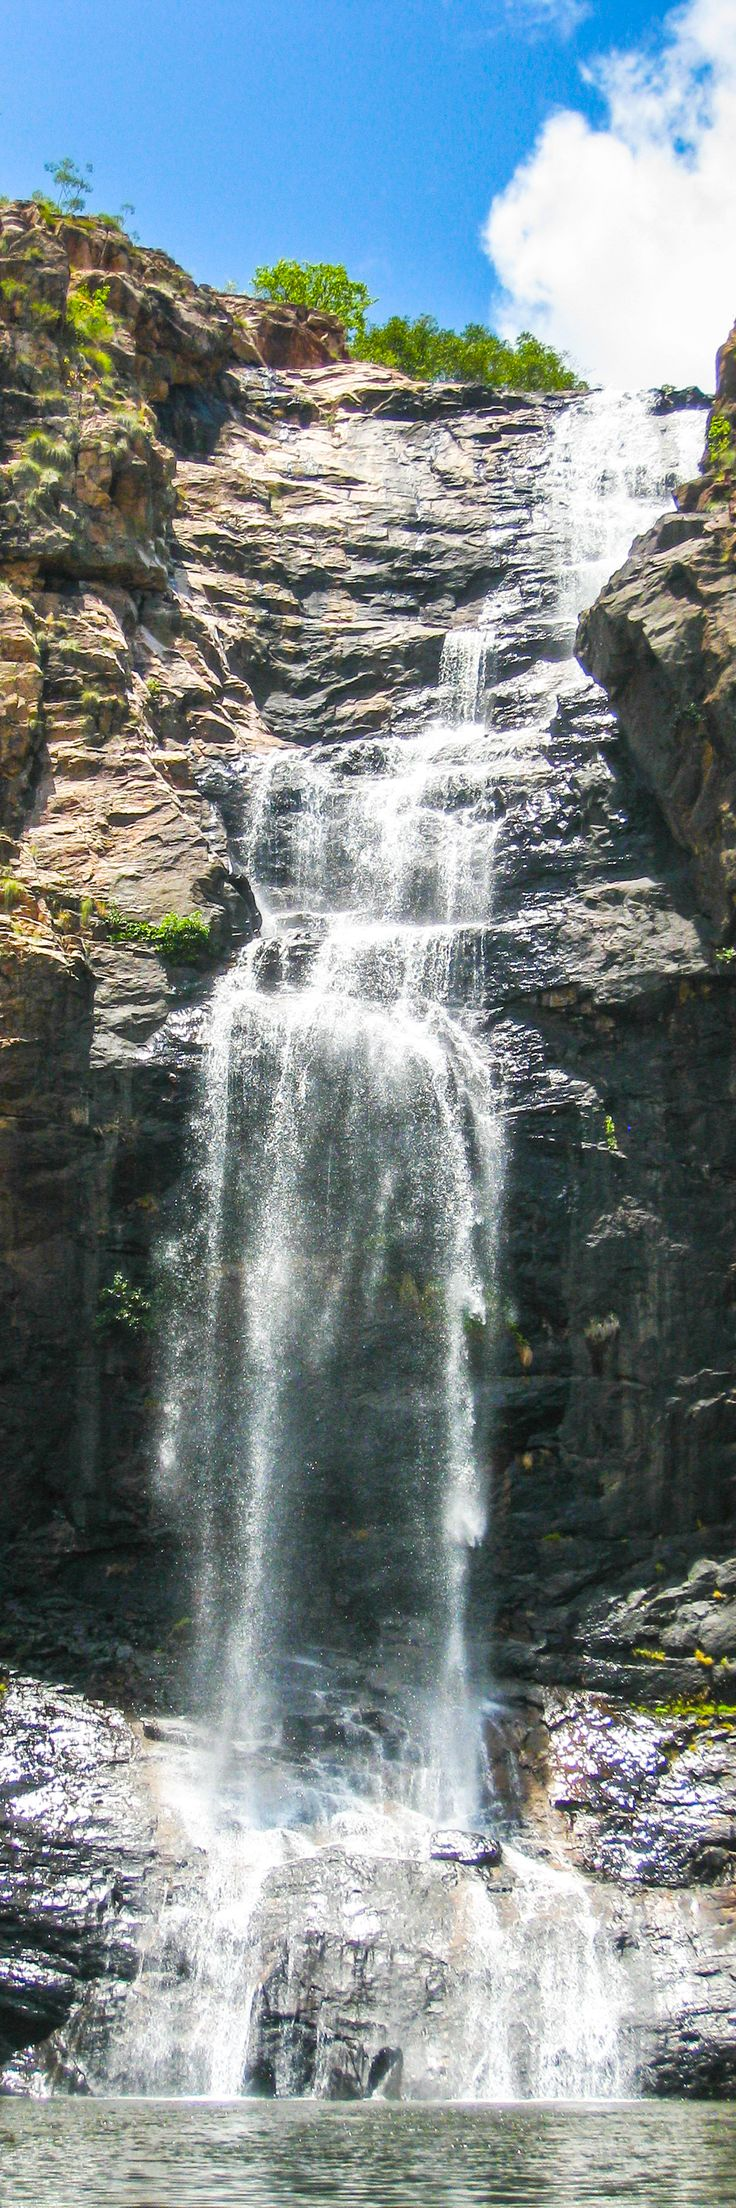 Gunlom Falls, also known as the Waterfall Creek Falls. A must-see place in Kakadu National Park, Australia.